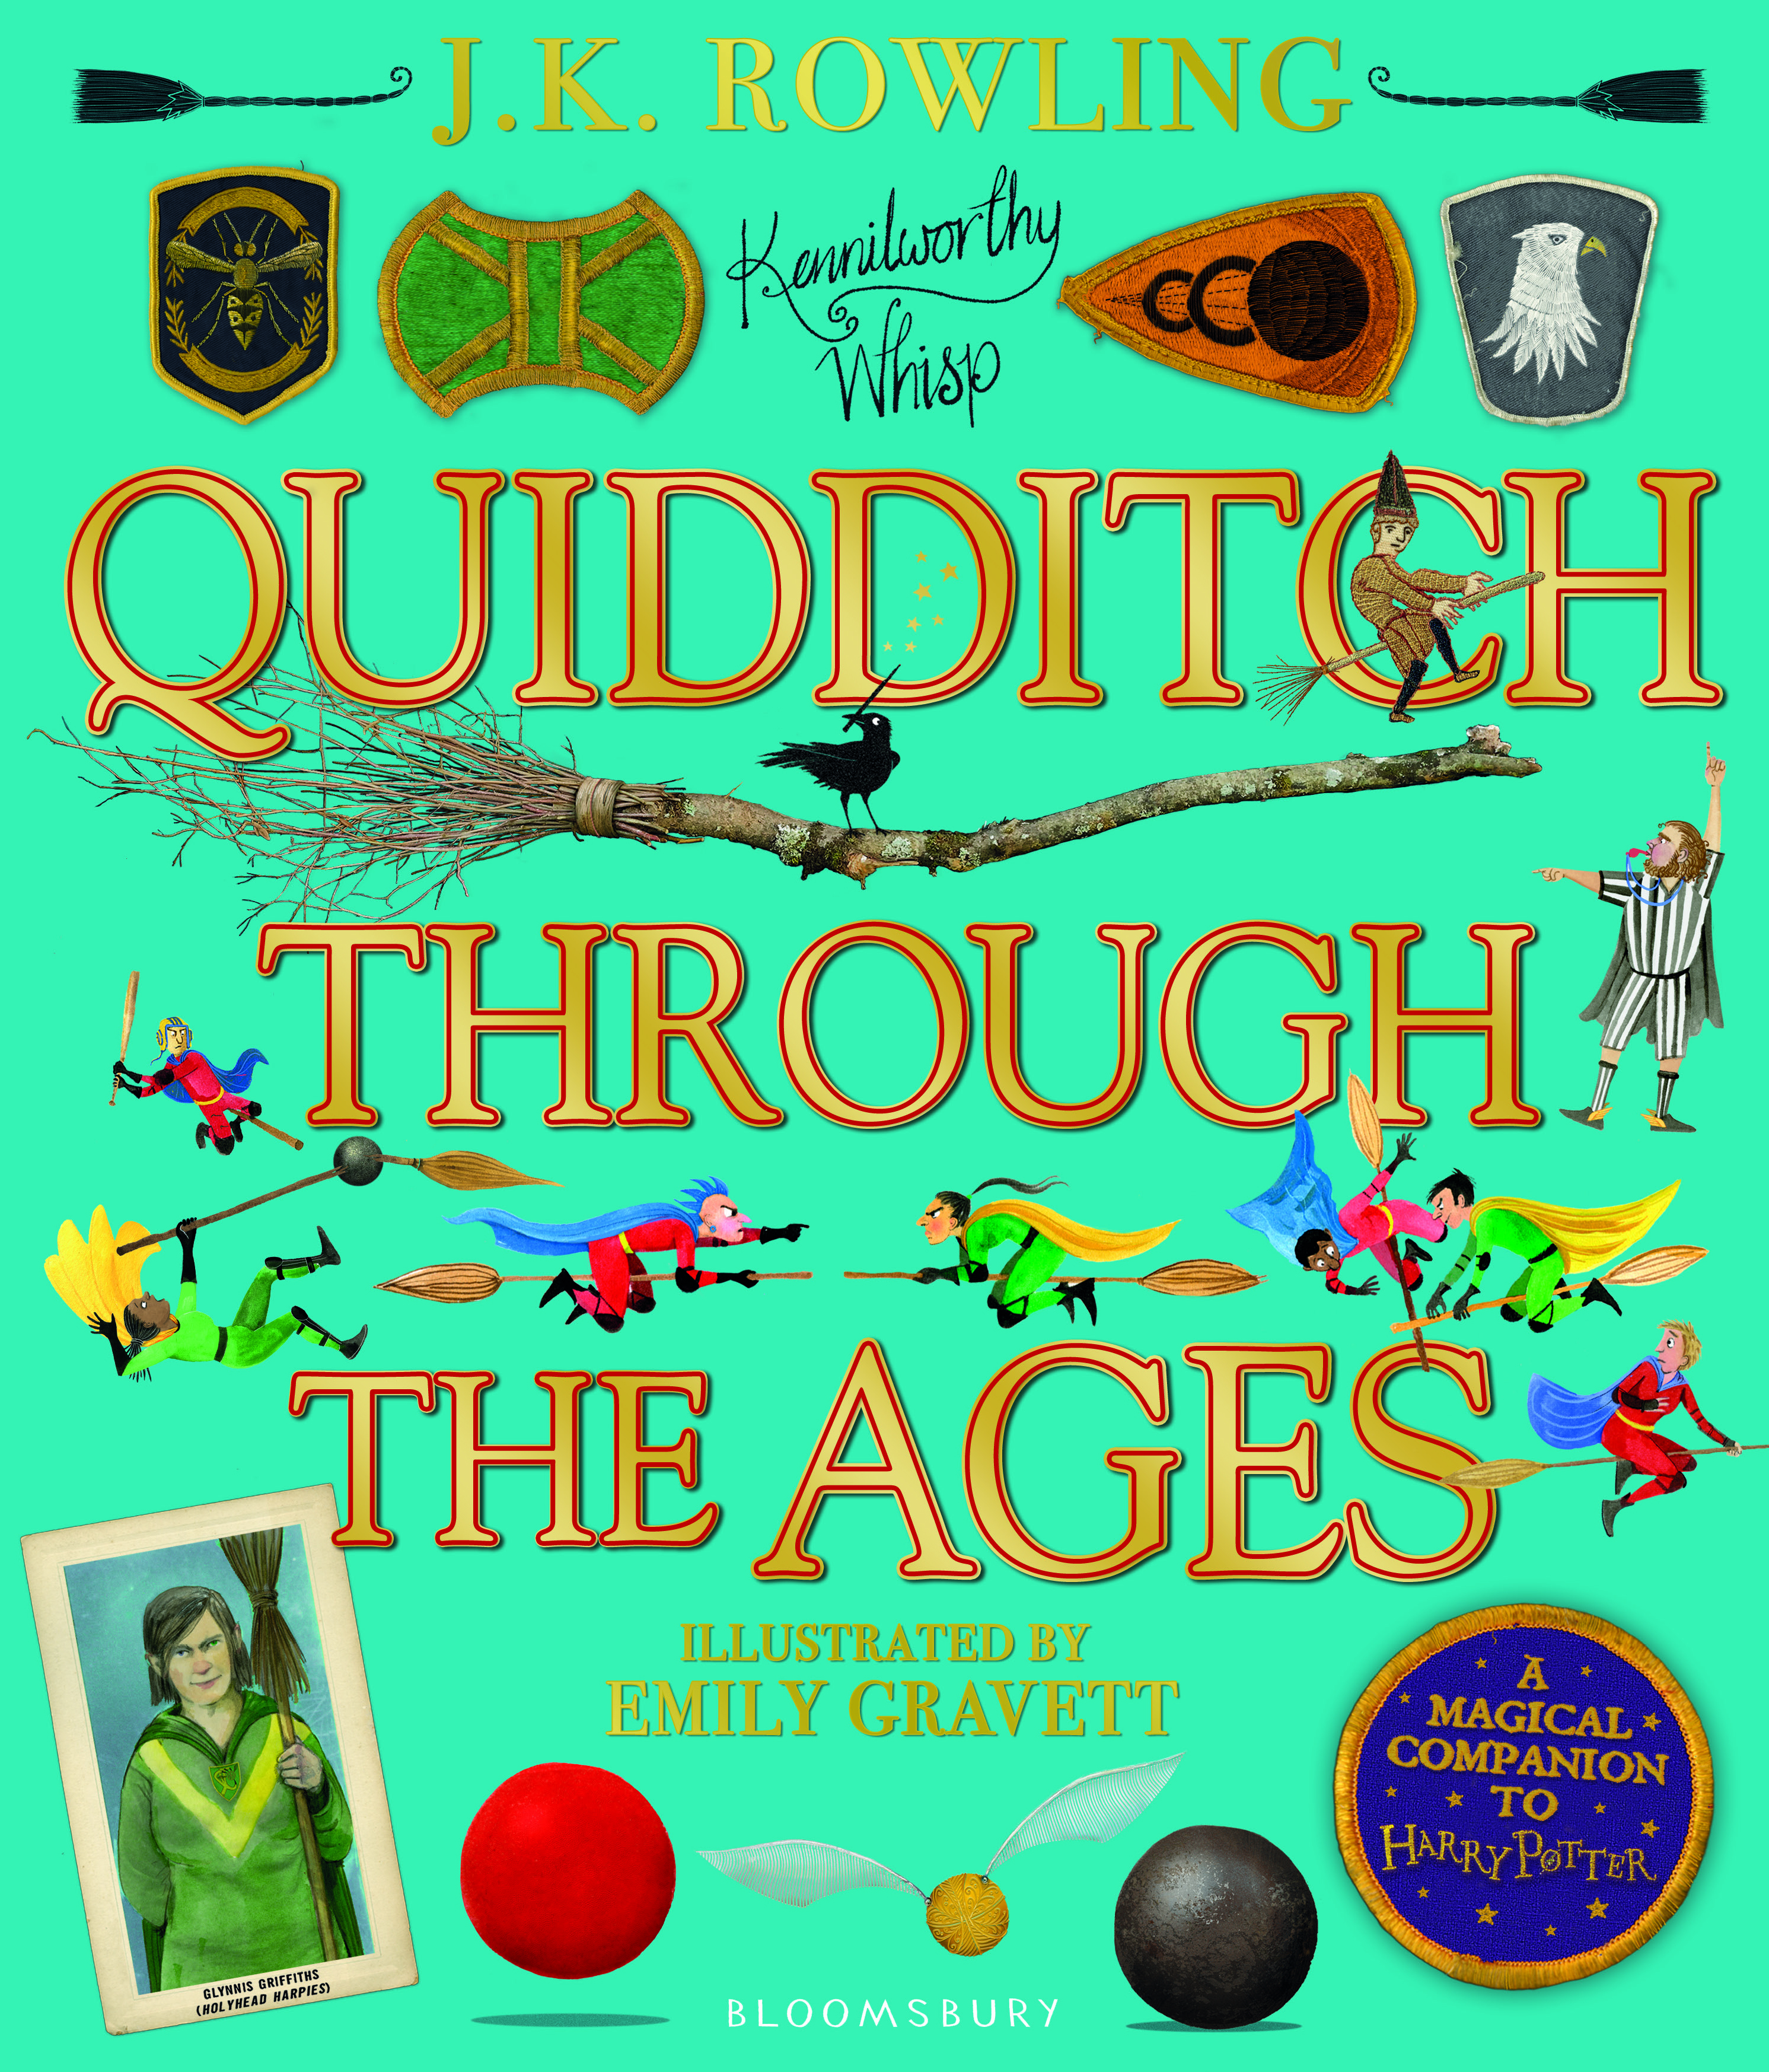 """The cover of the illustrated """"Quidditch Through the Ages"""" features gold font against a teal background. Brightly colored Quidditch accessories decorate the cover."""